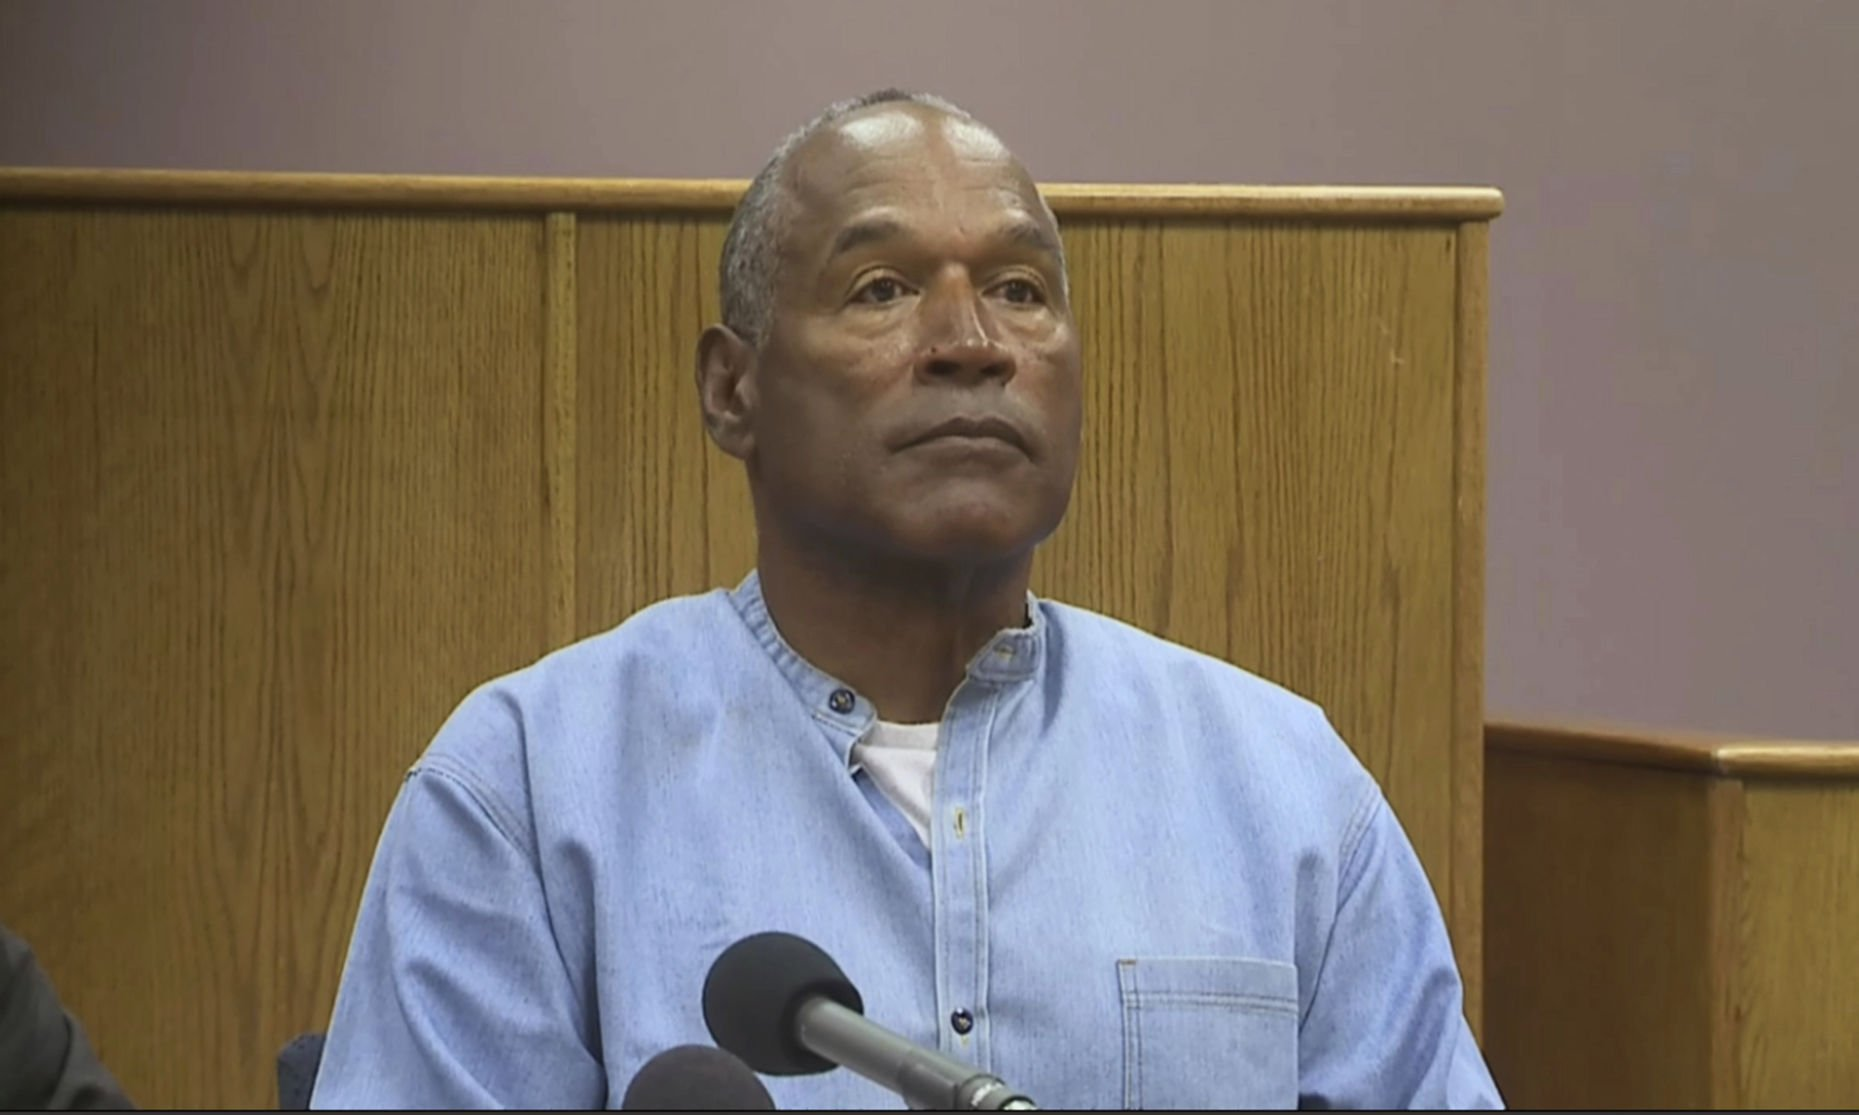 OJ Gets Parole, but What Happens Then?